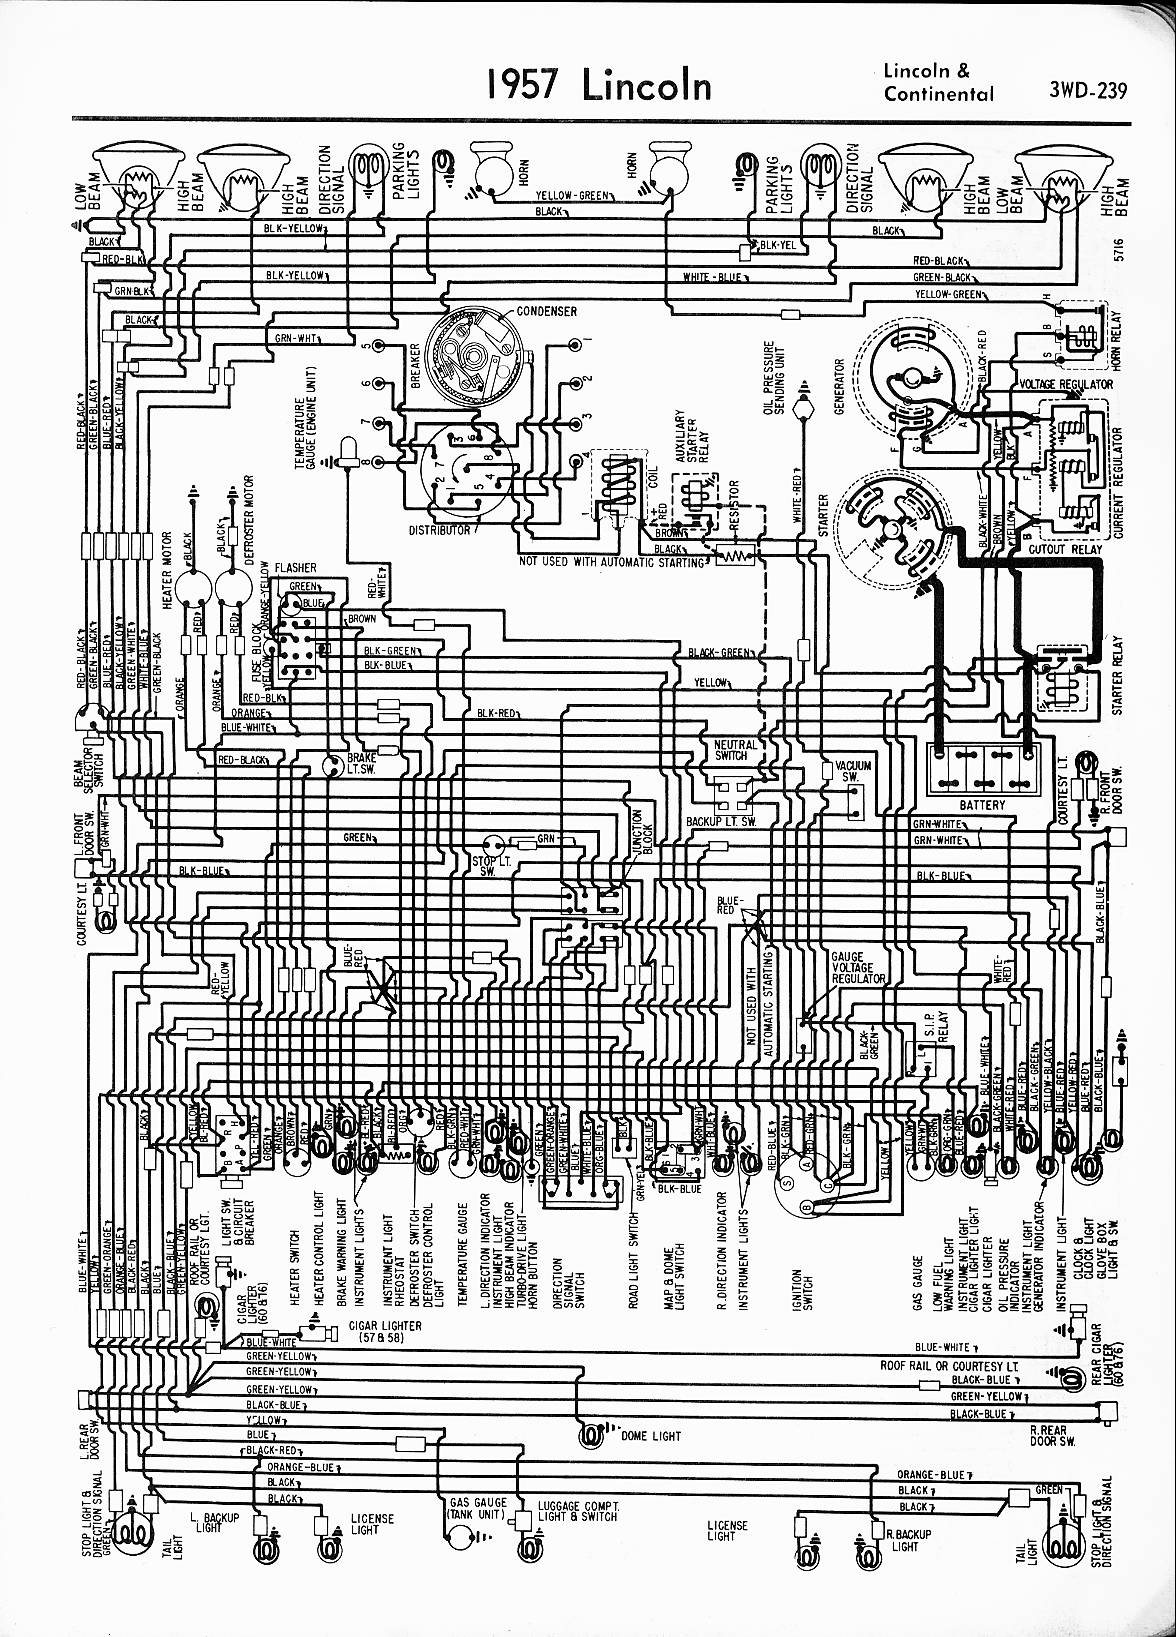 lincoln wiring diagrams 1957 196557 65 lincoln wiring diagrams 1957 lincoln \u0026 continental